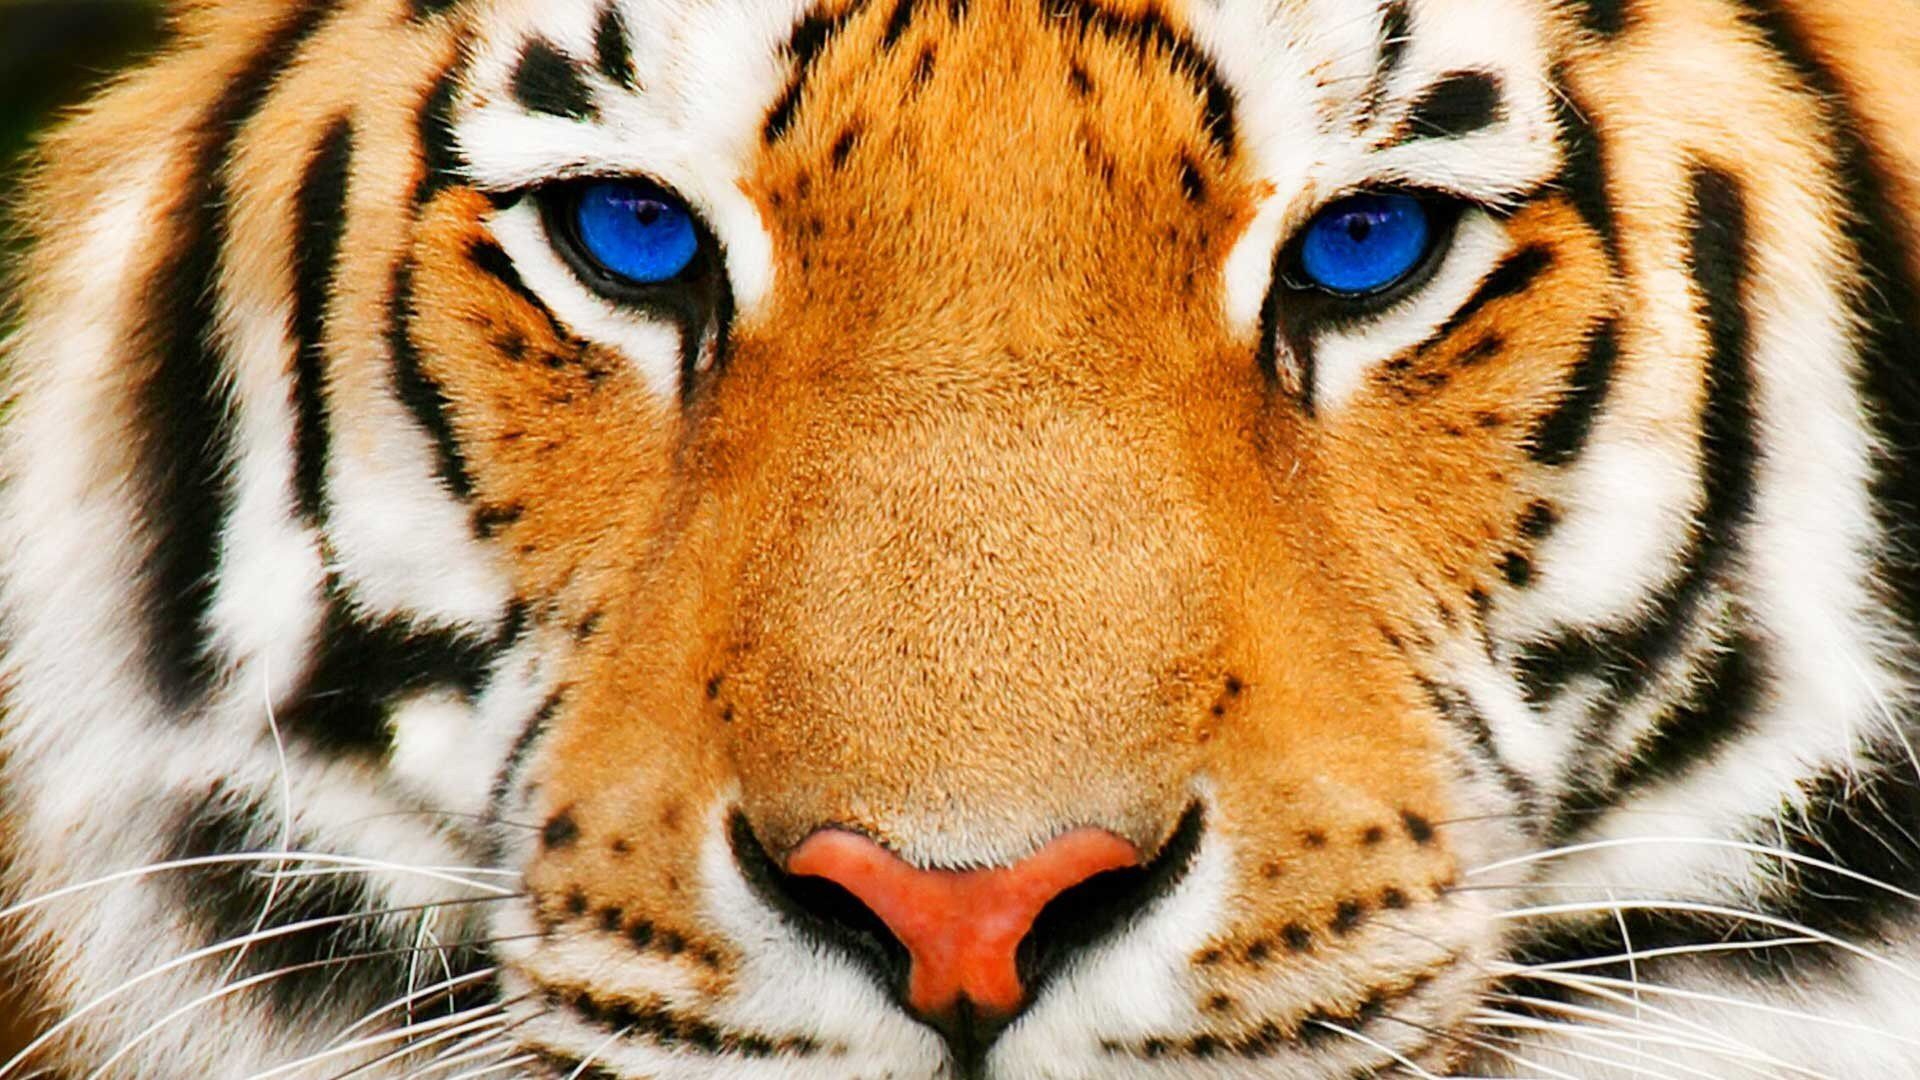 Tiger Face Bengal Animal Faces Wallpaper For